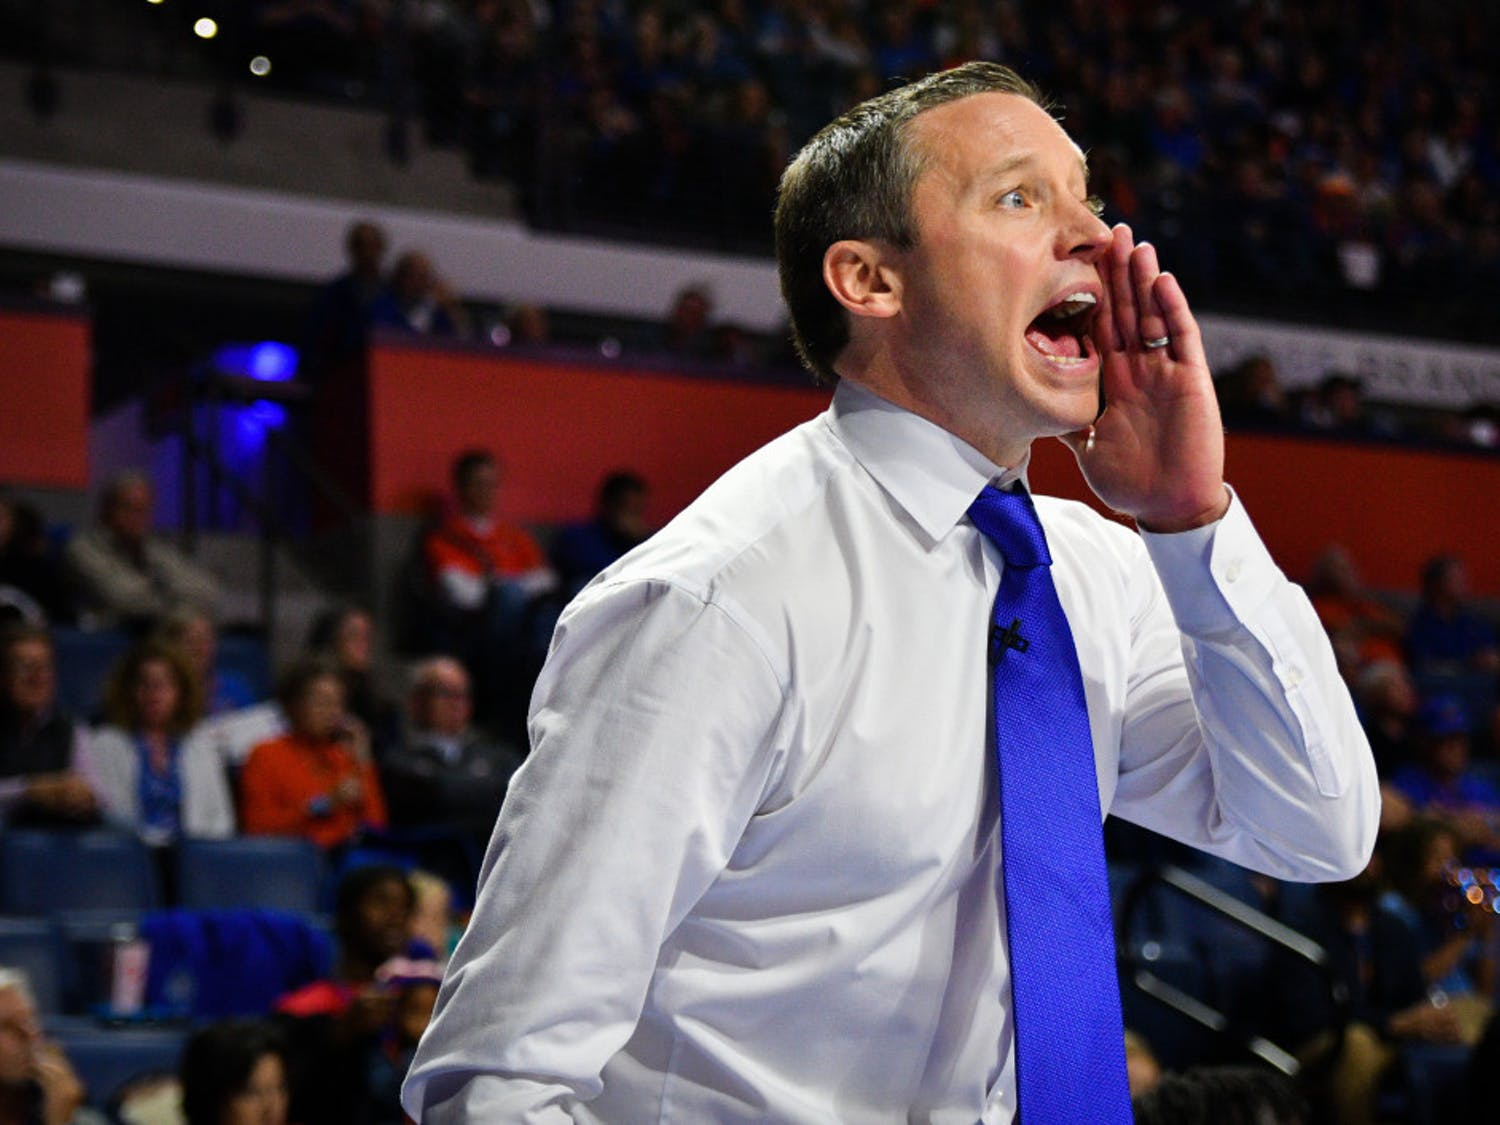 Florida men's basketball coach Mike White and the Gators play Vanderbilt at 9 p.m. on Wednesday at the O'Connell Center. The Commodores are looking to pick up their first SEC win of the season.